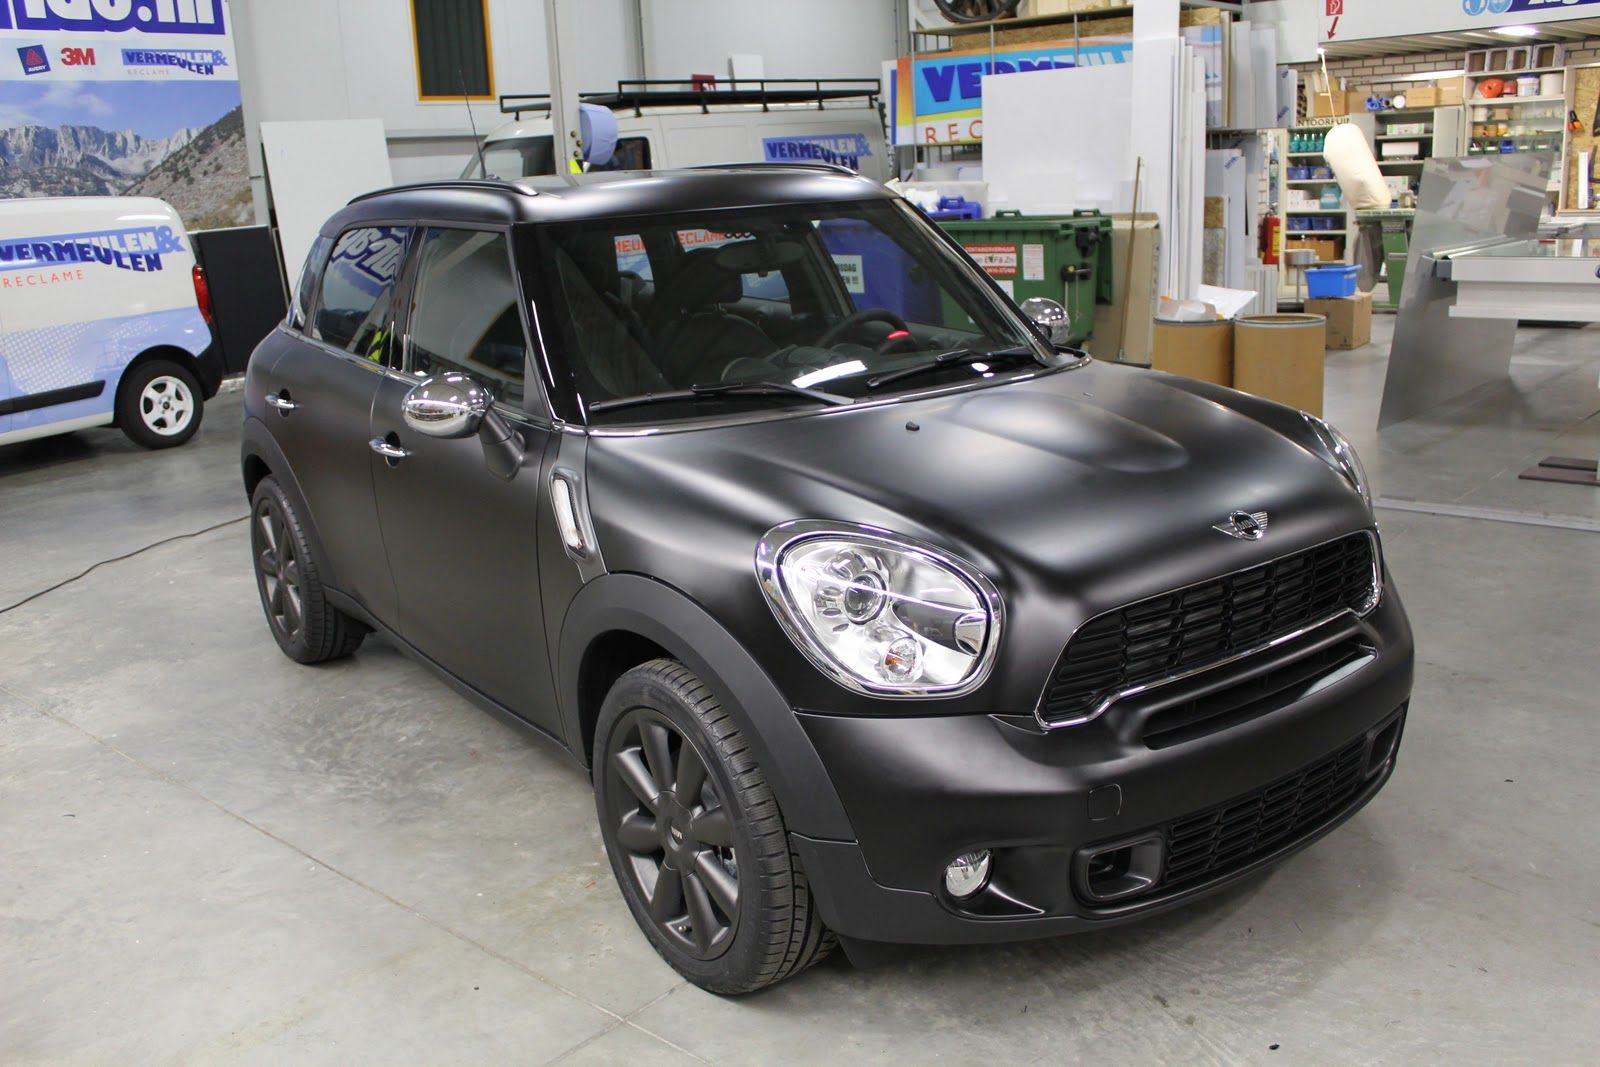 Mini Countryman Matte Black I Like The Look But Not In